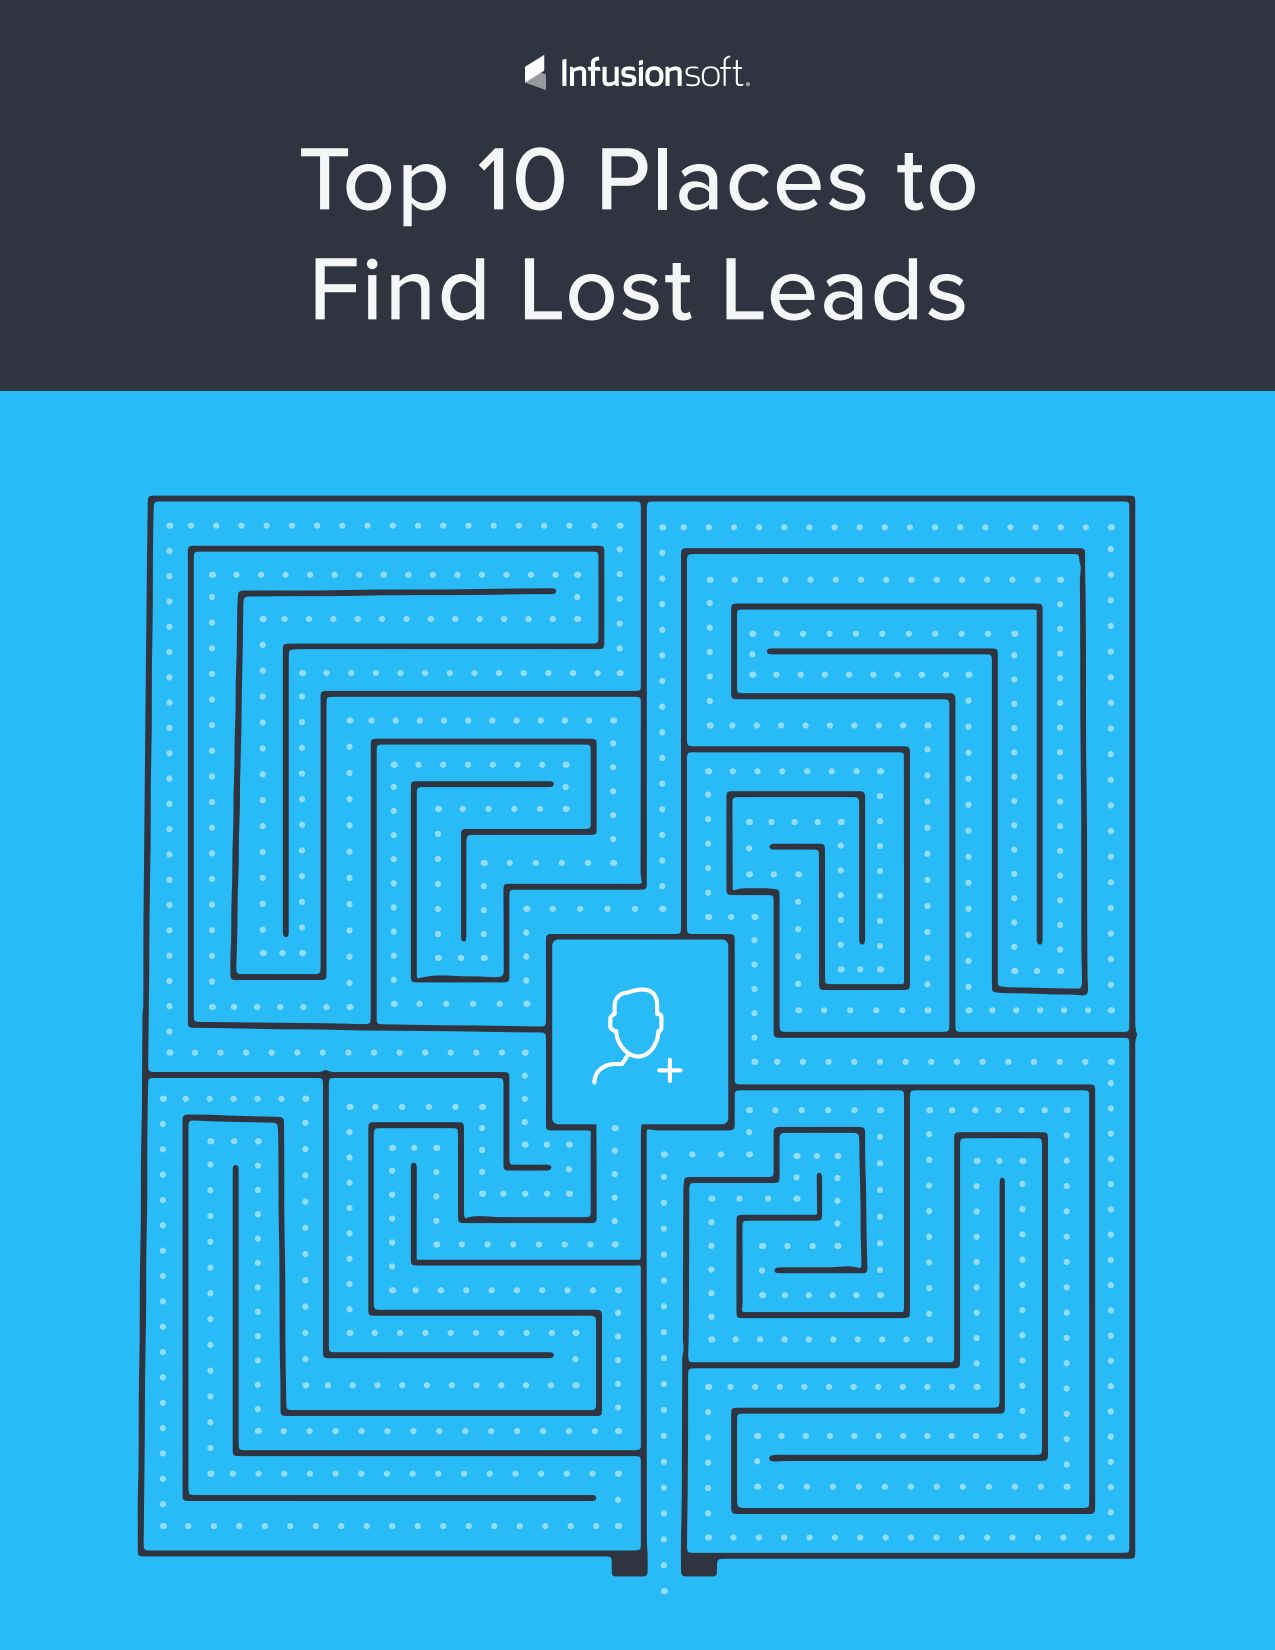 25 things every small business should automate infusionsoft top 10 places to find lost leads fandeluxe Choice Image